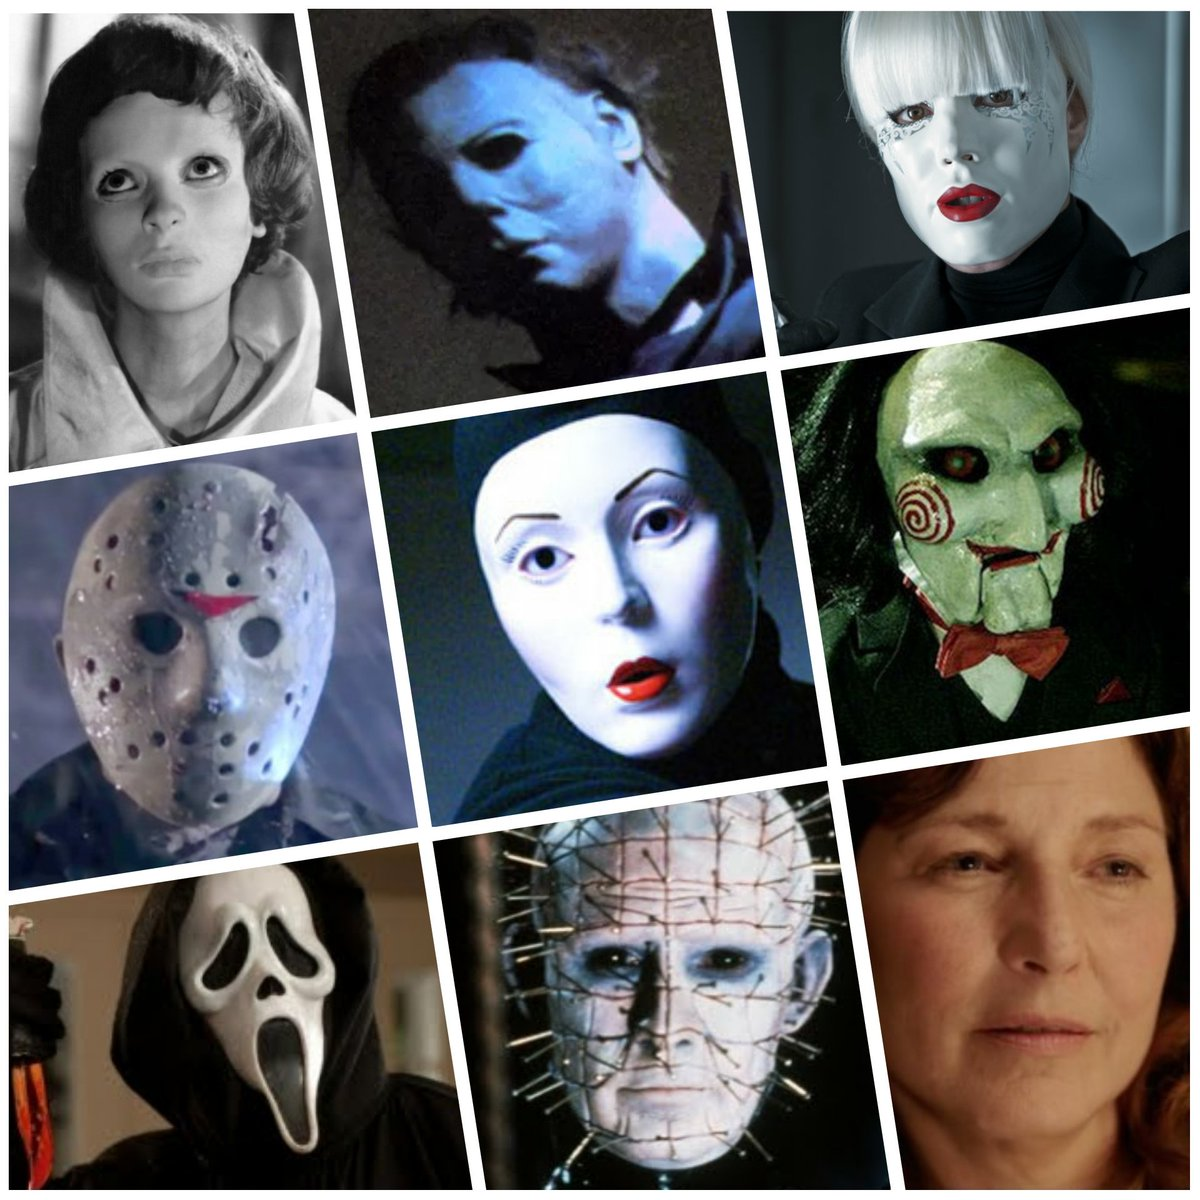 There&#39;s something about a white face that makes a scary story scarier: EYES WITHOUT A FACE, HALLOWEEN, PASSION, FRIDAY THE 13TH, NIP/TUCK, SAW, SCREAM, HELLRAISER, and GET OUT. <br>http://pic.twitter.com/UgrftSjoe6